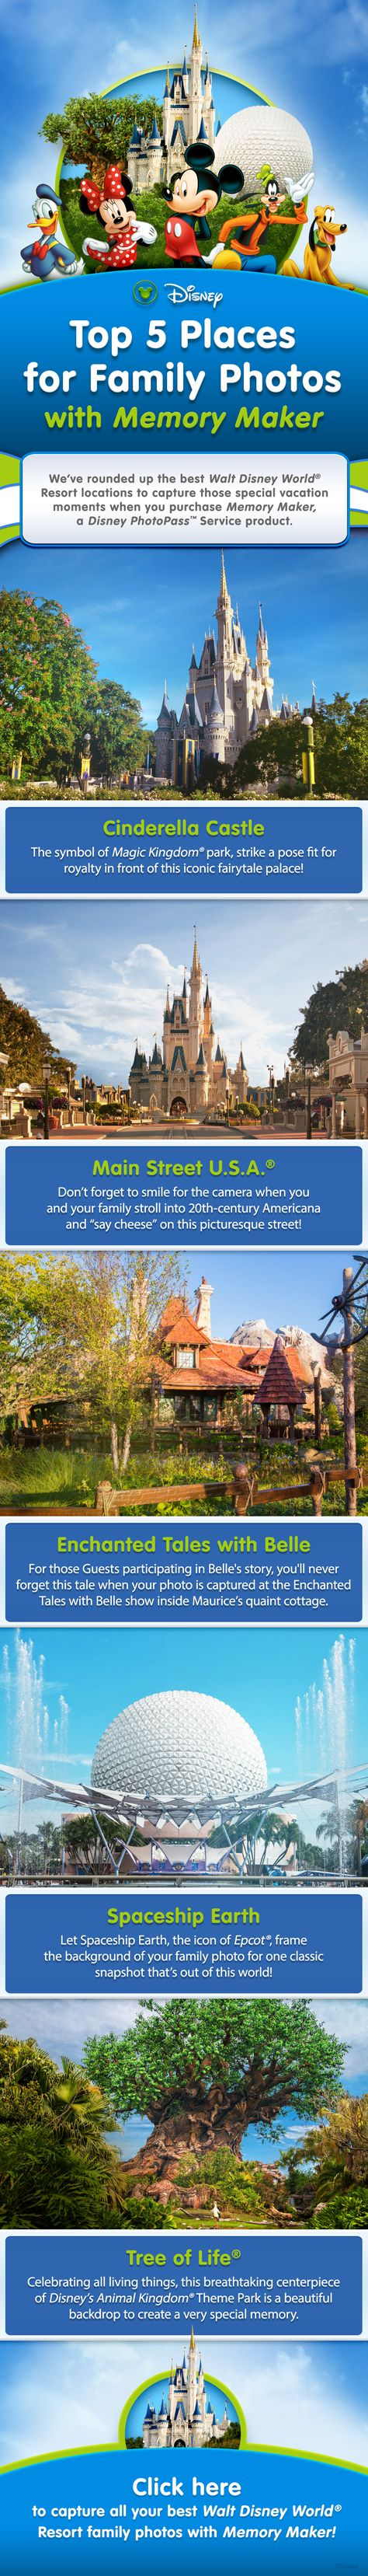 Top 5 Places for Family Photos with Memory Maker at Walt Disney World! #vacation #tips #tricks